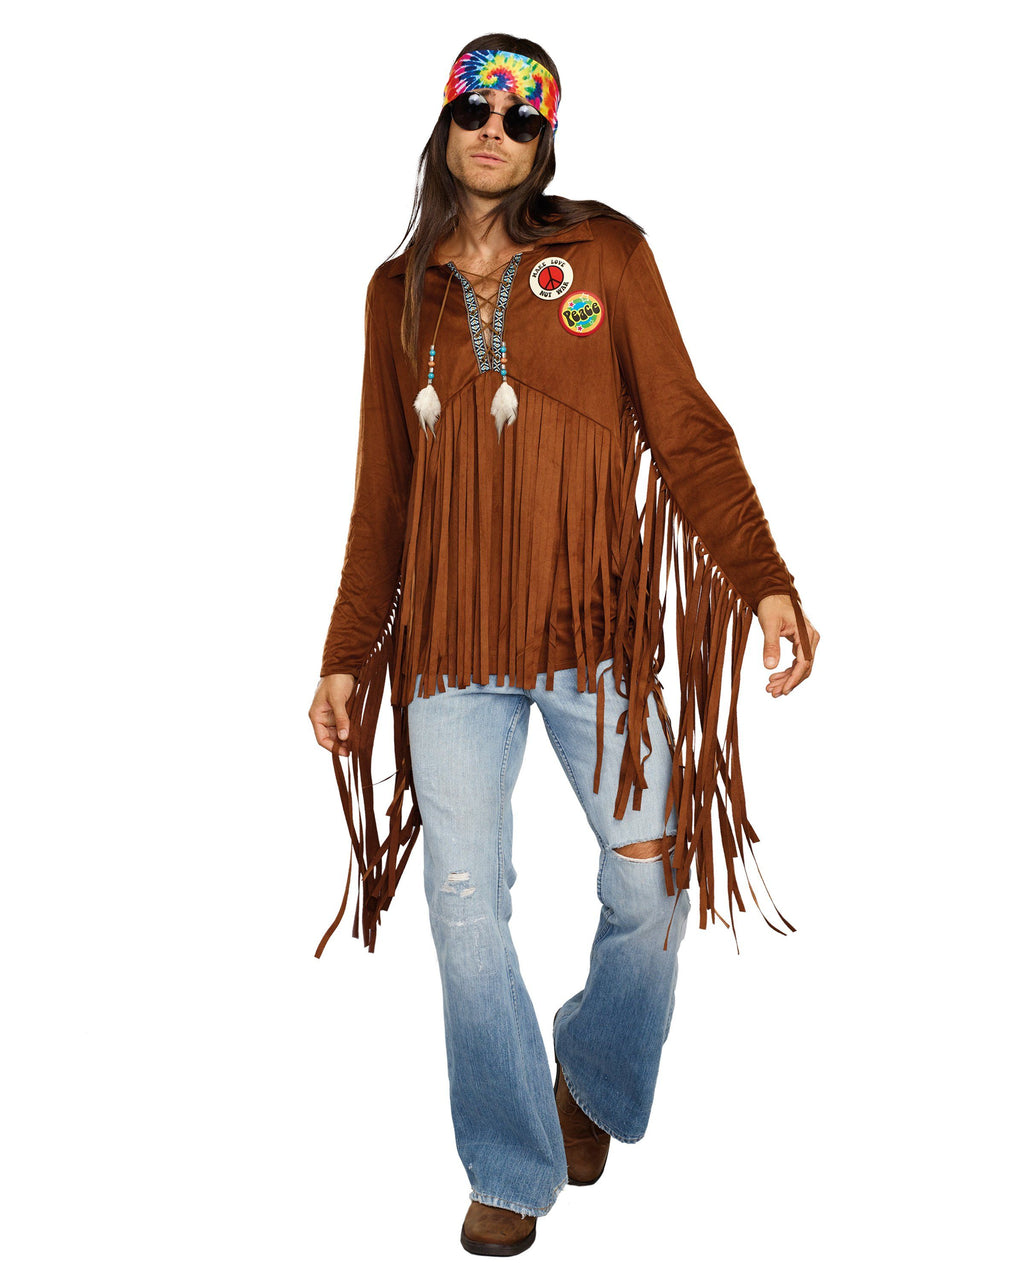 Hippie Dude Men's Costume Dreamgirl Costume